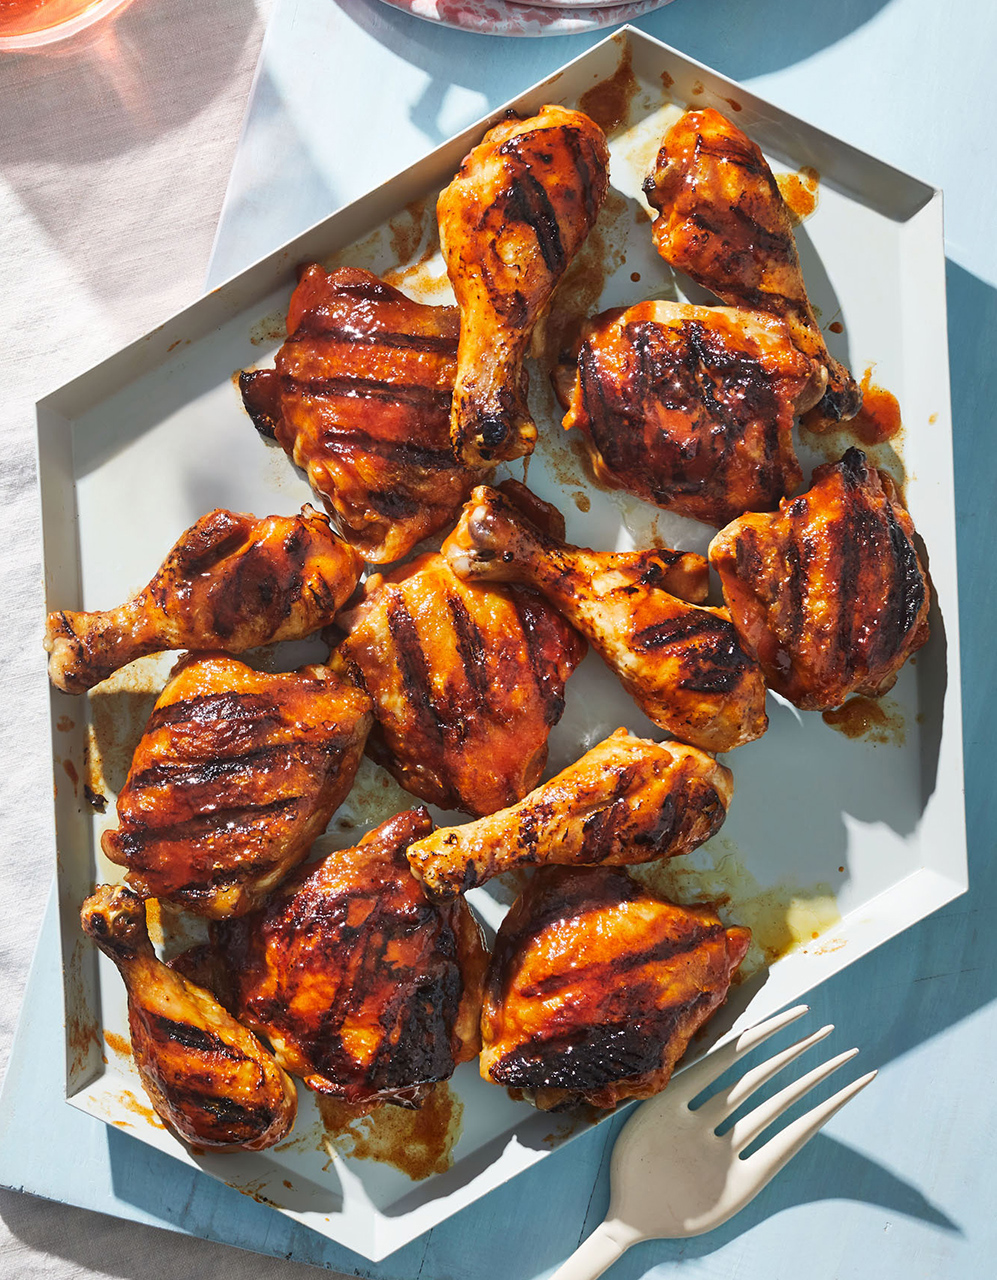 Grilled Chicken with Brown Sugar-Vinegar Glaze